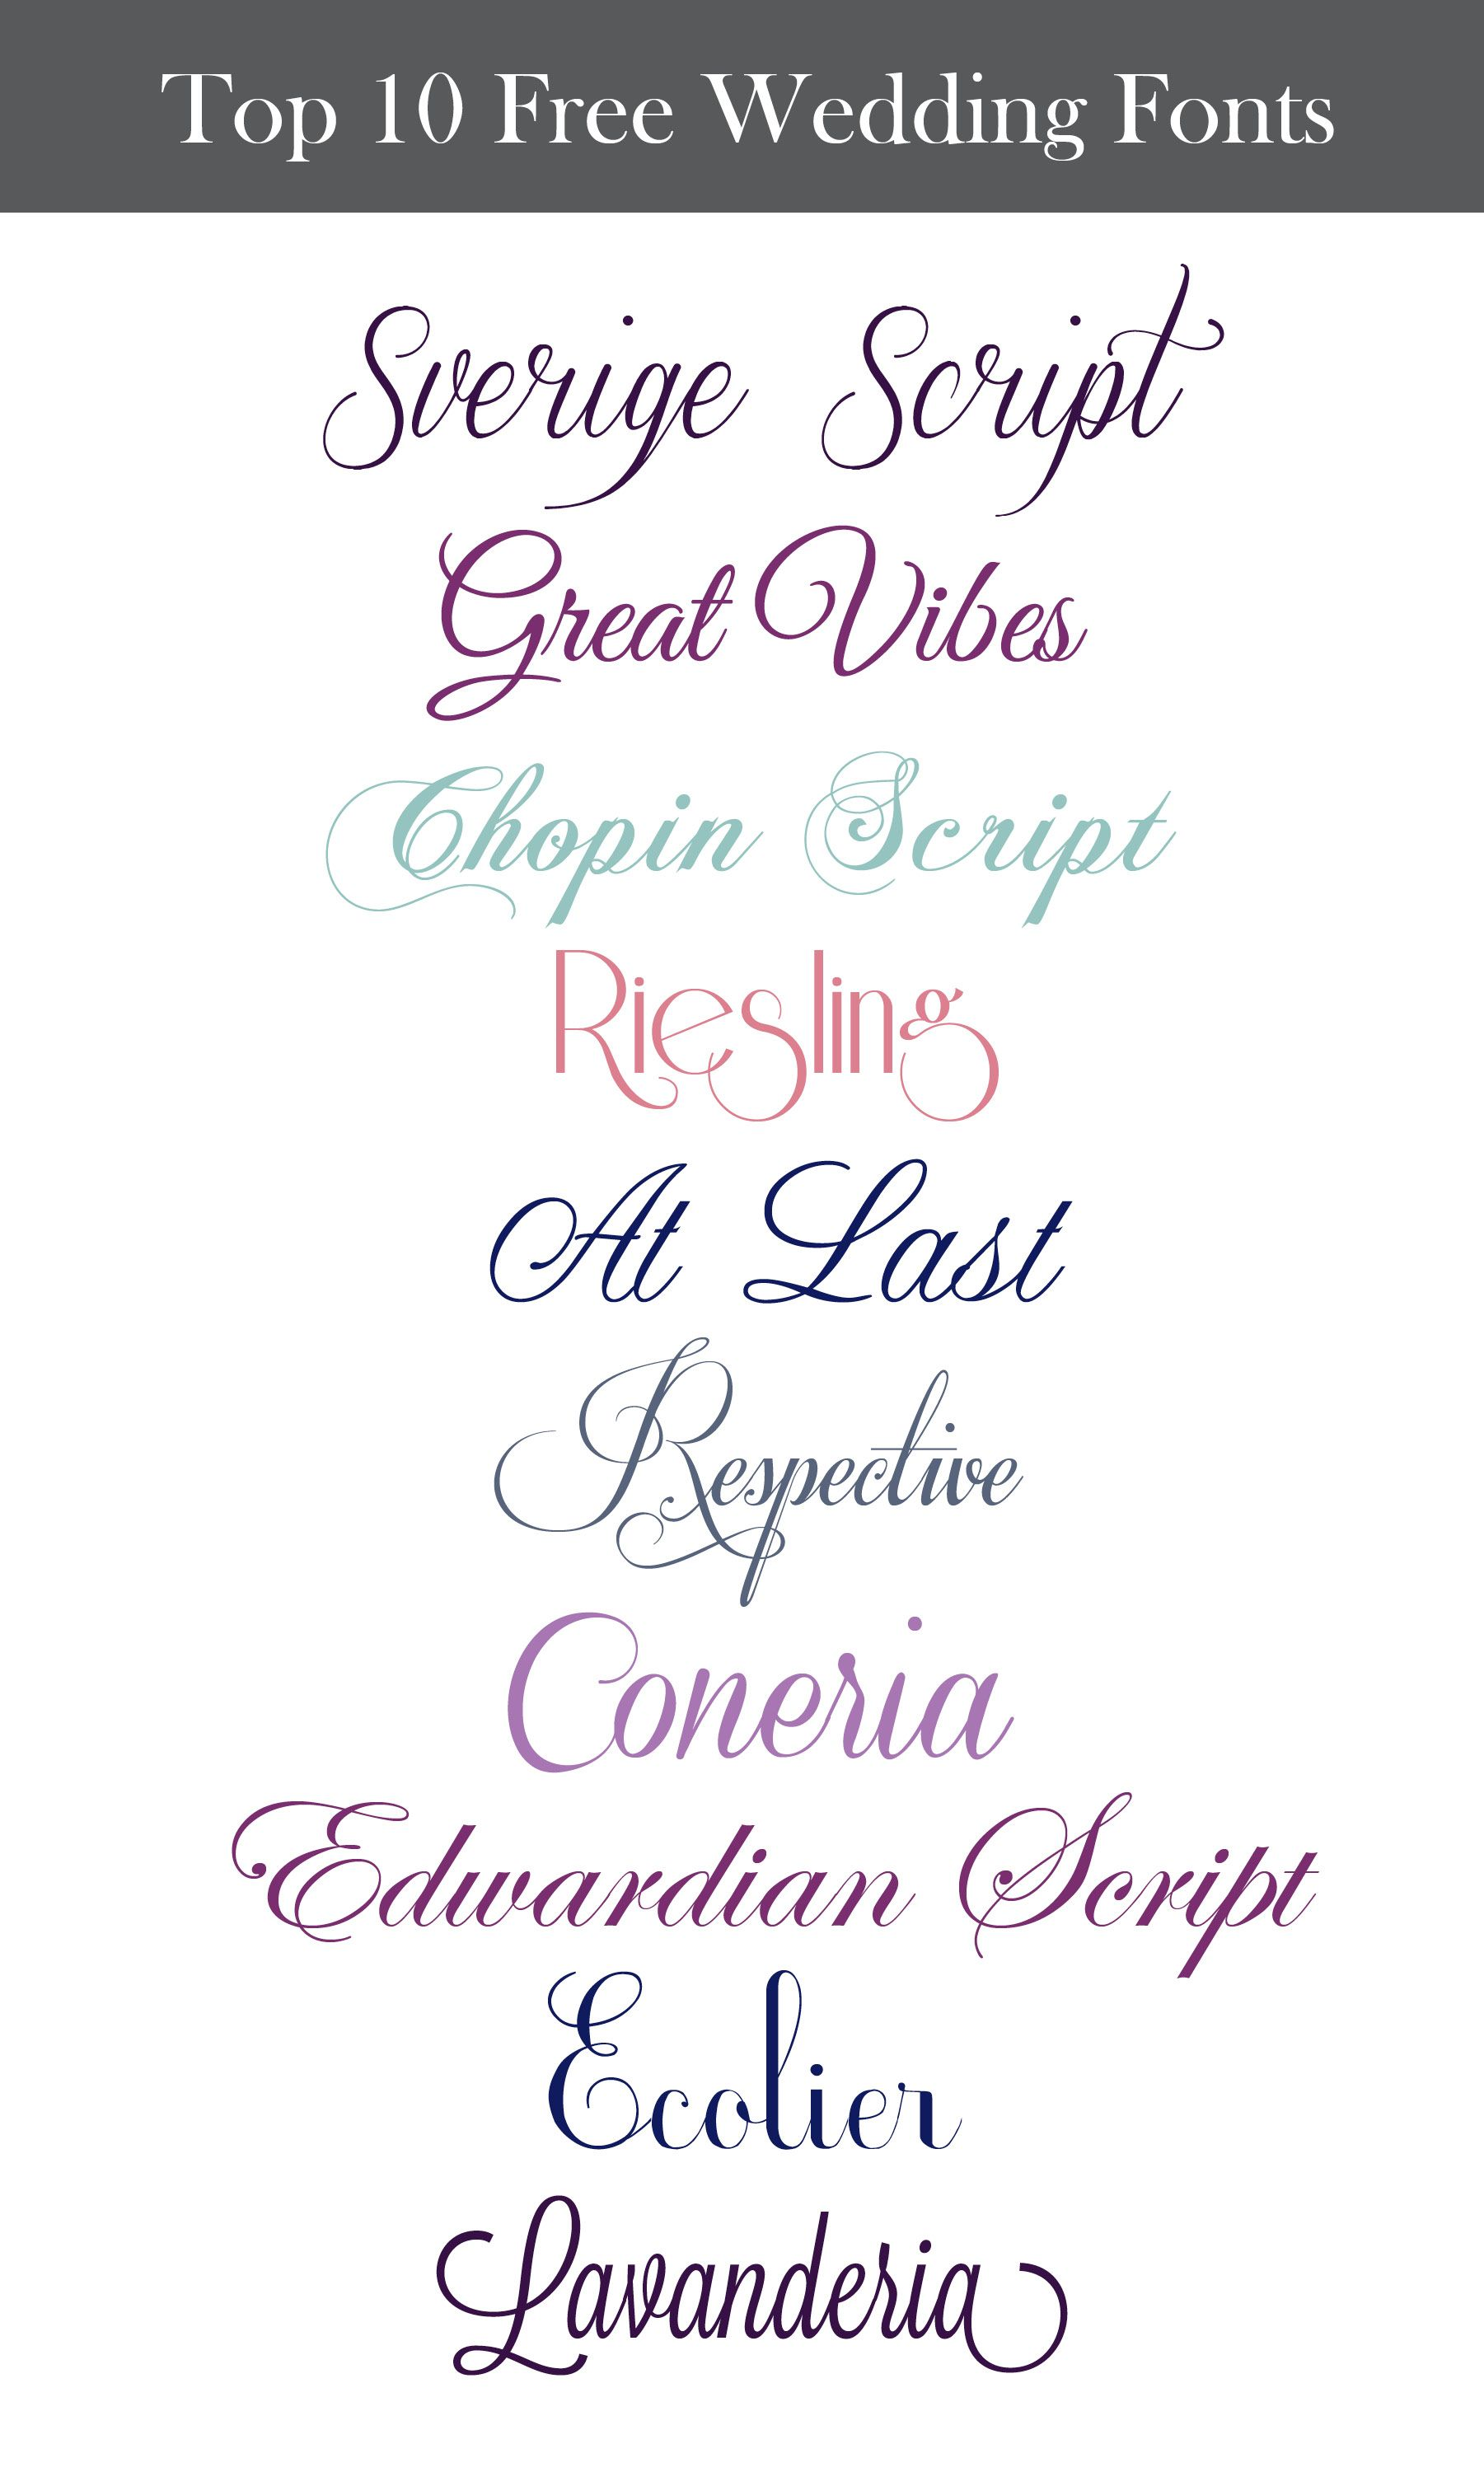 Inspiration Wednesday: Free Wedding Fonts | Fonts, Inspiration and ...